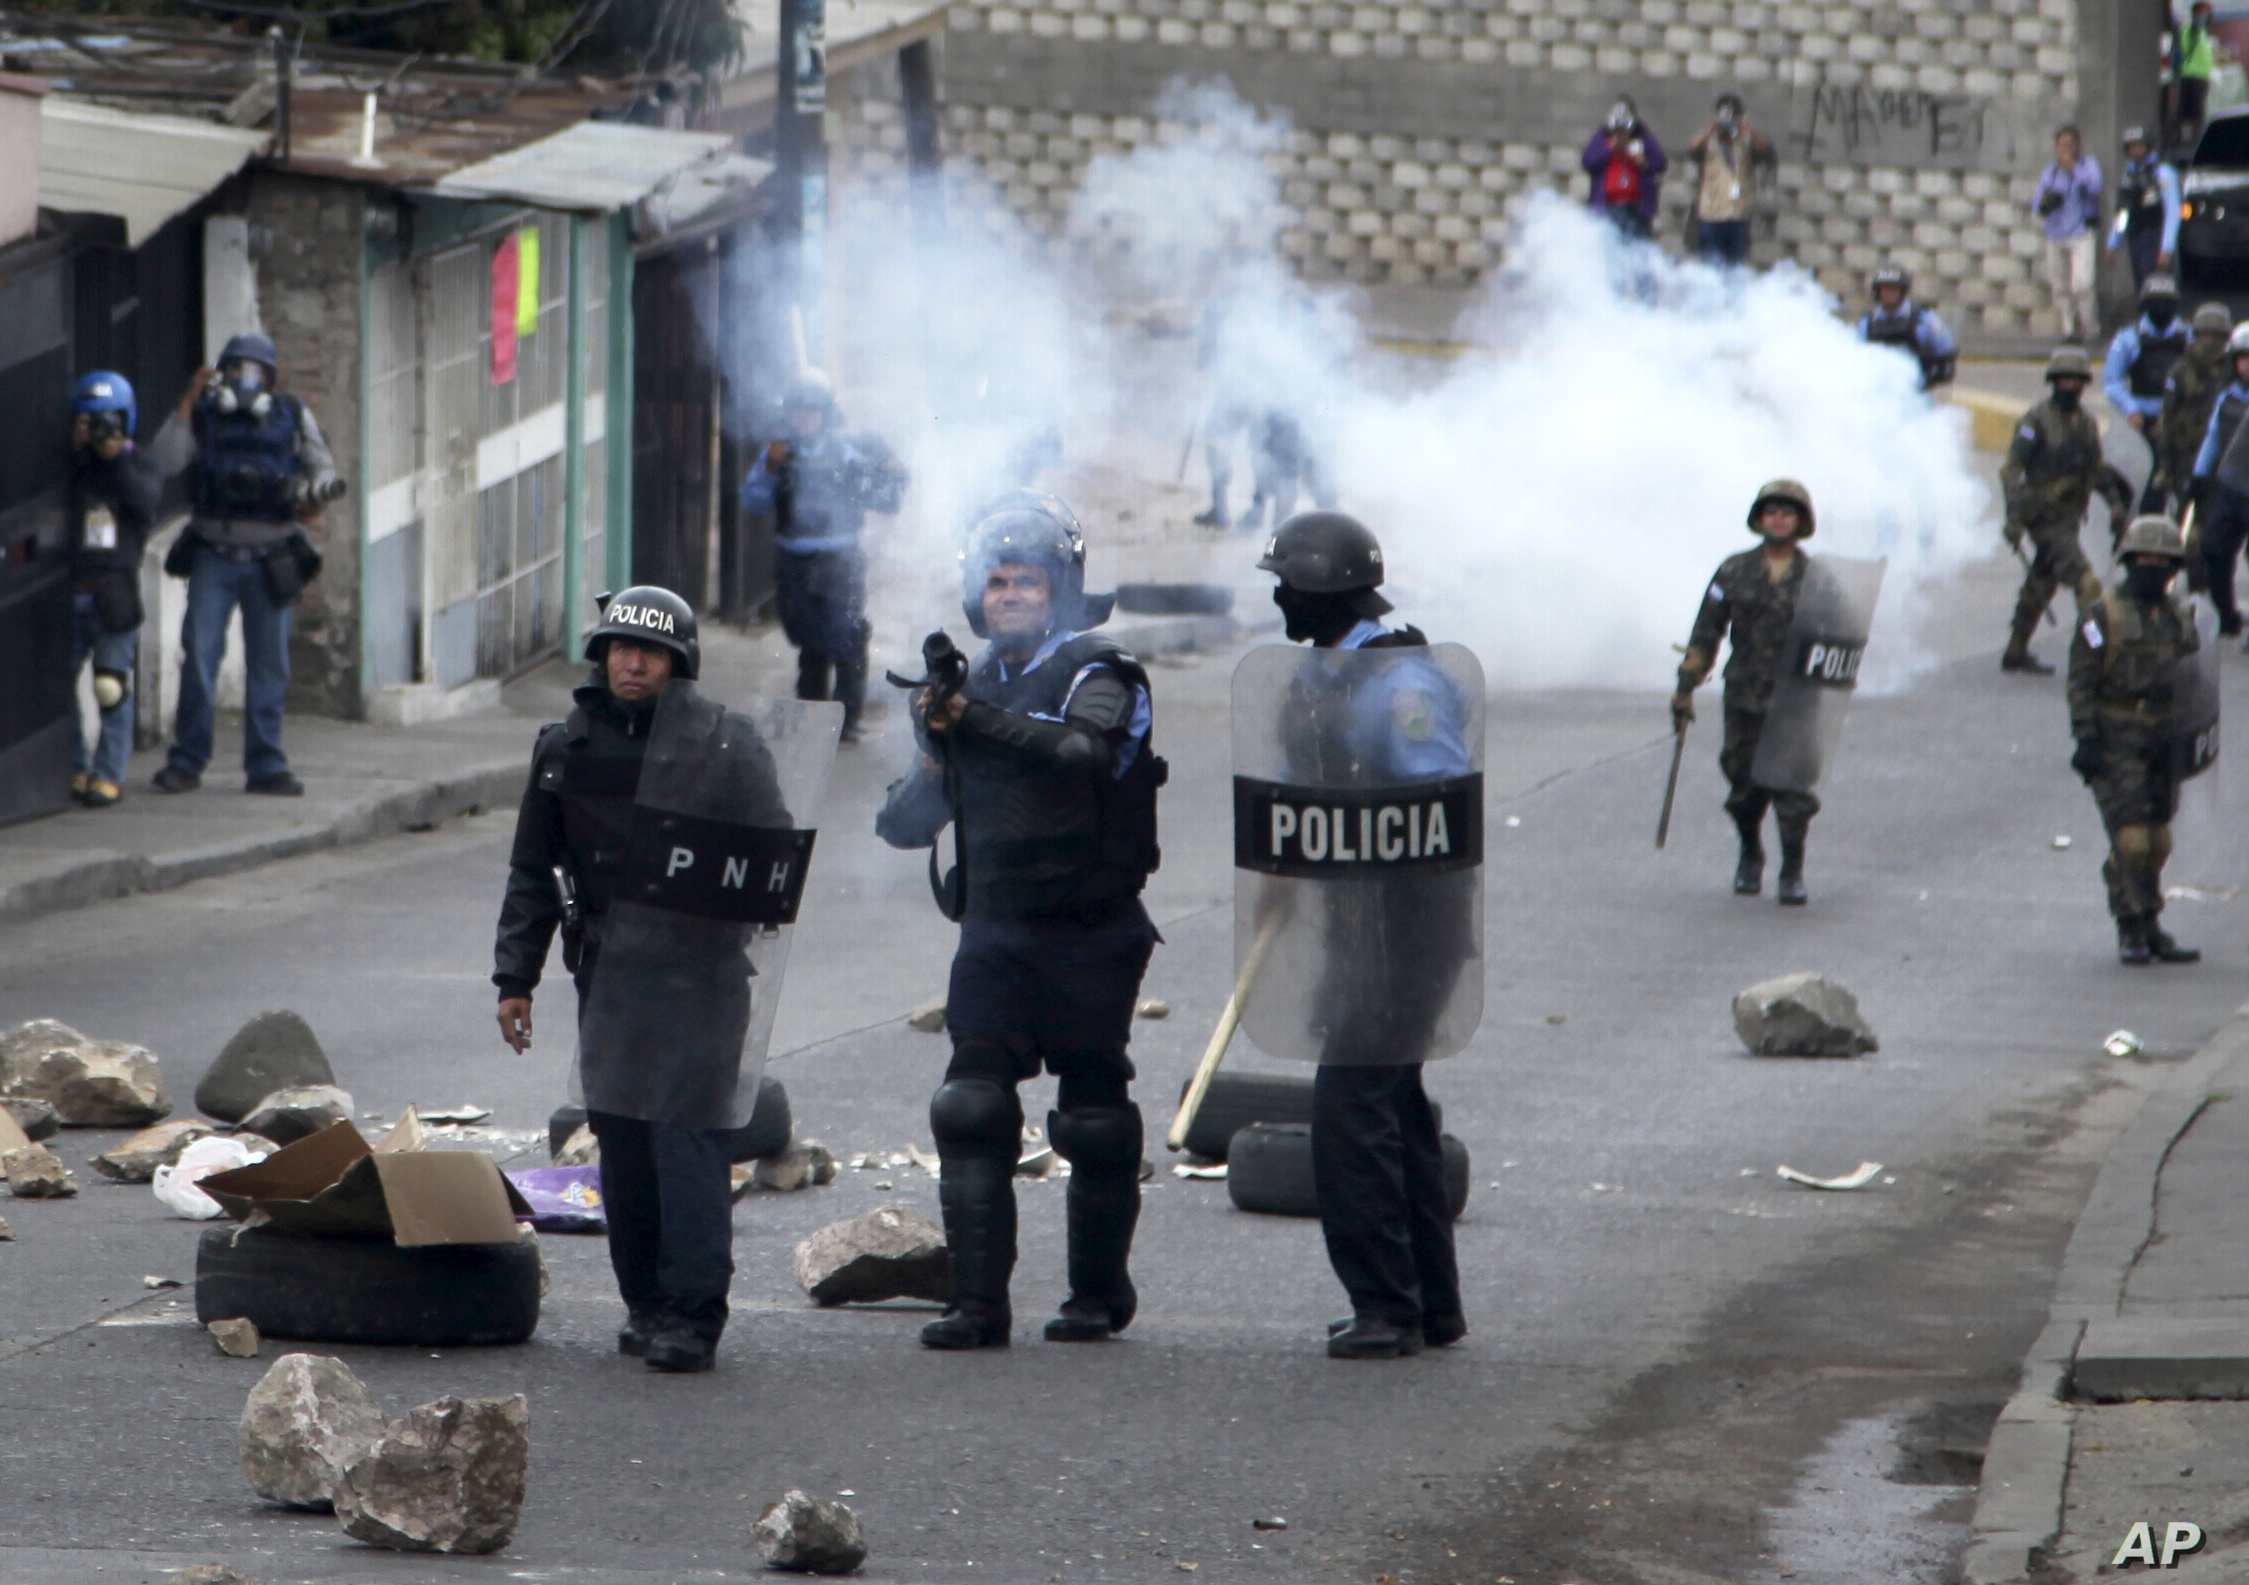 Police fire tear gas at supporters of opposition presidential candidate Salvador Nasralla during clashes in the Policarpo Paz Garcia neighborhood of Tegucigalpa, Honduras, Jan. 20, 2018.